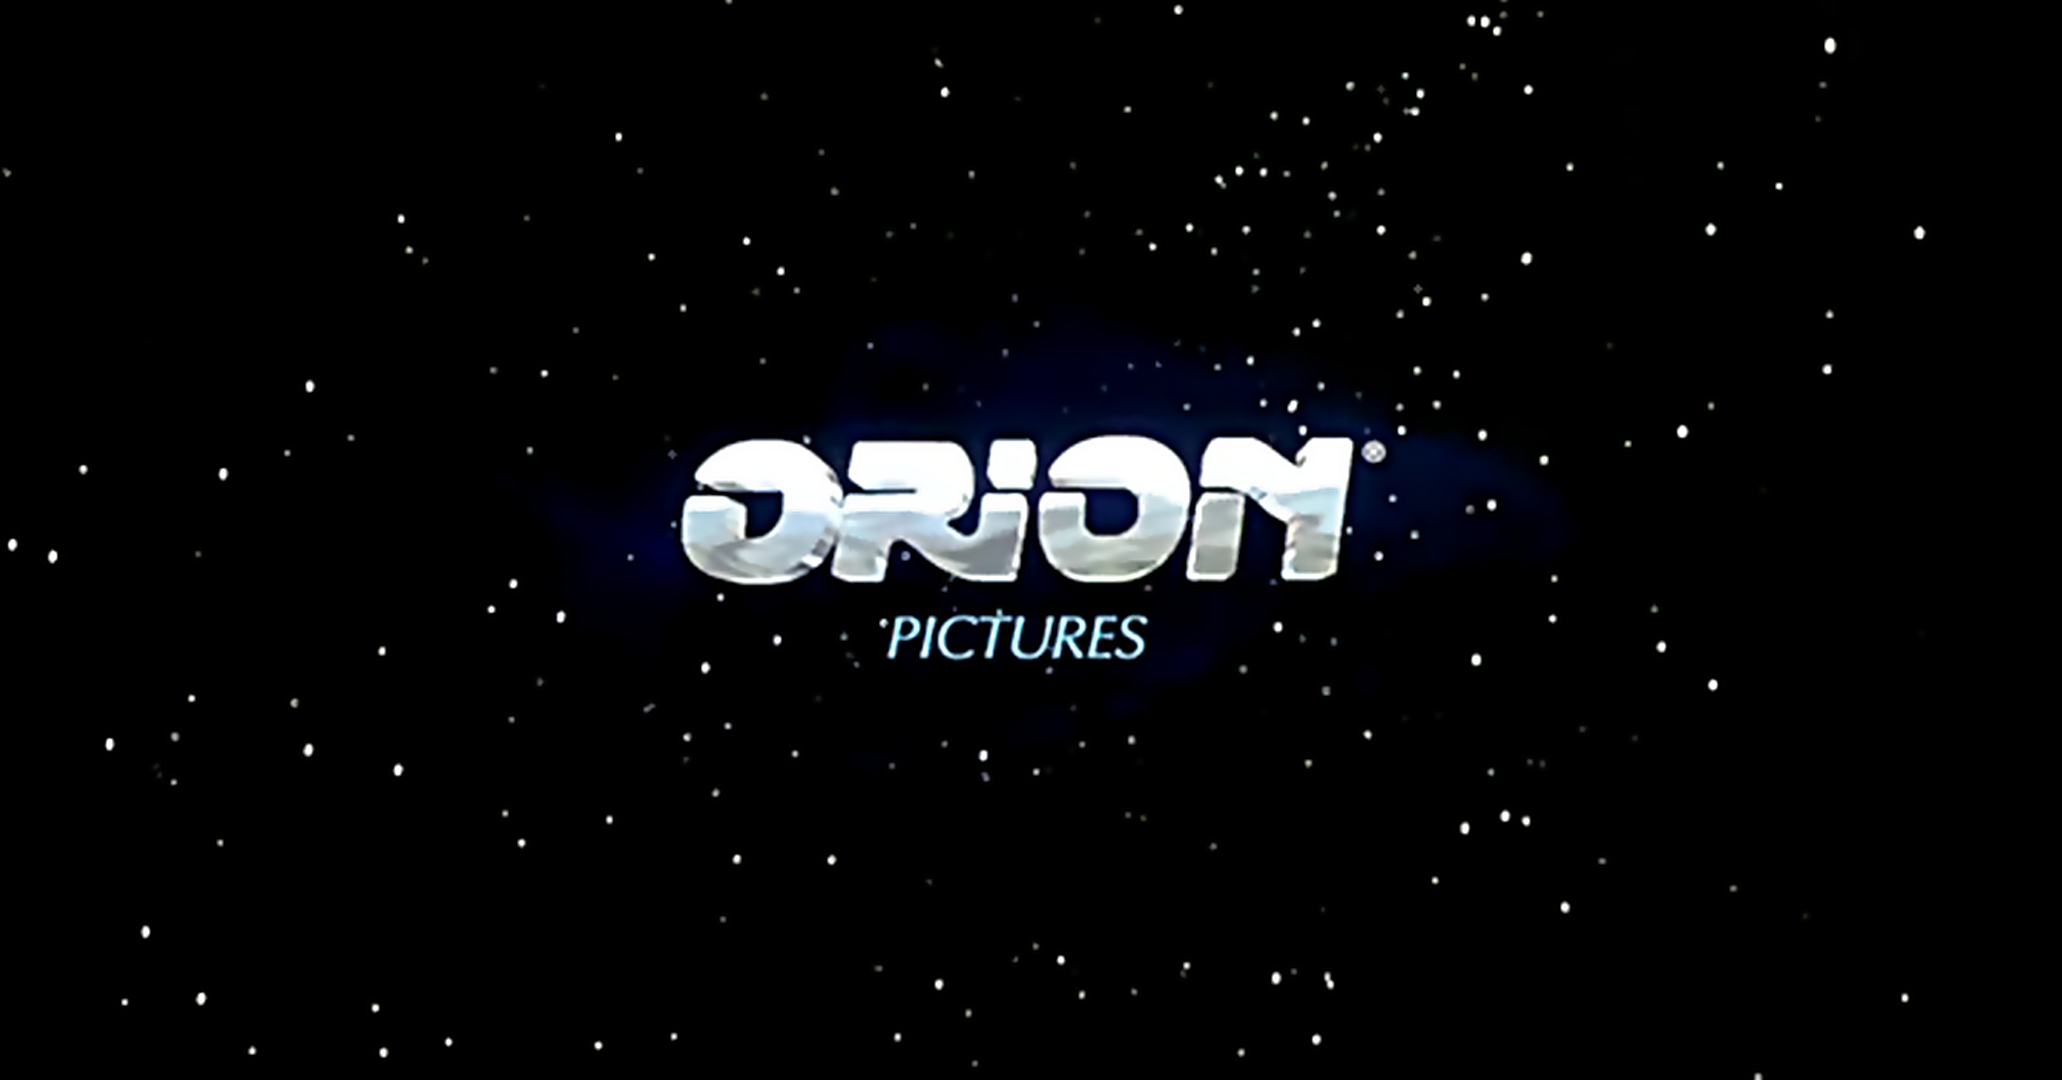 Orion Pictures (1999)